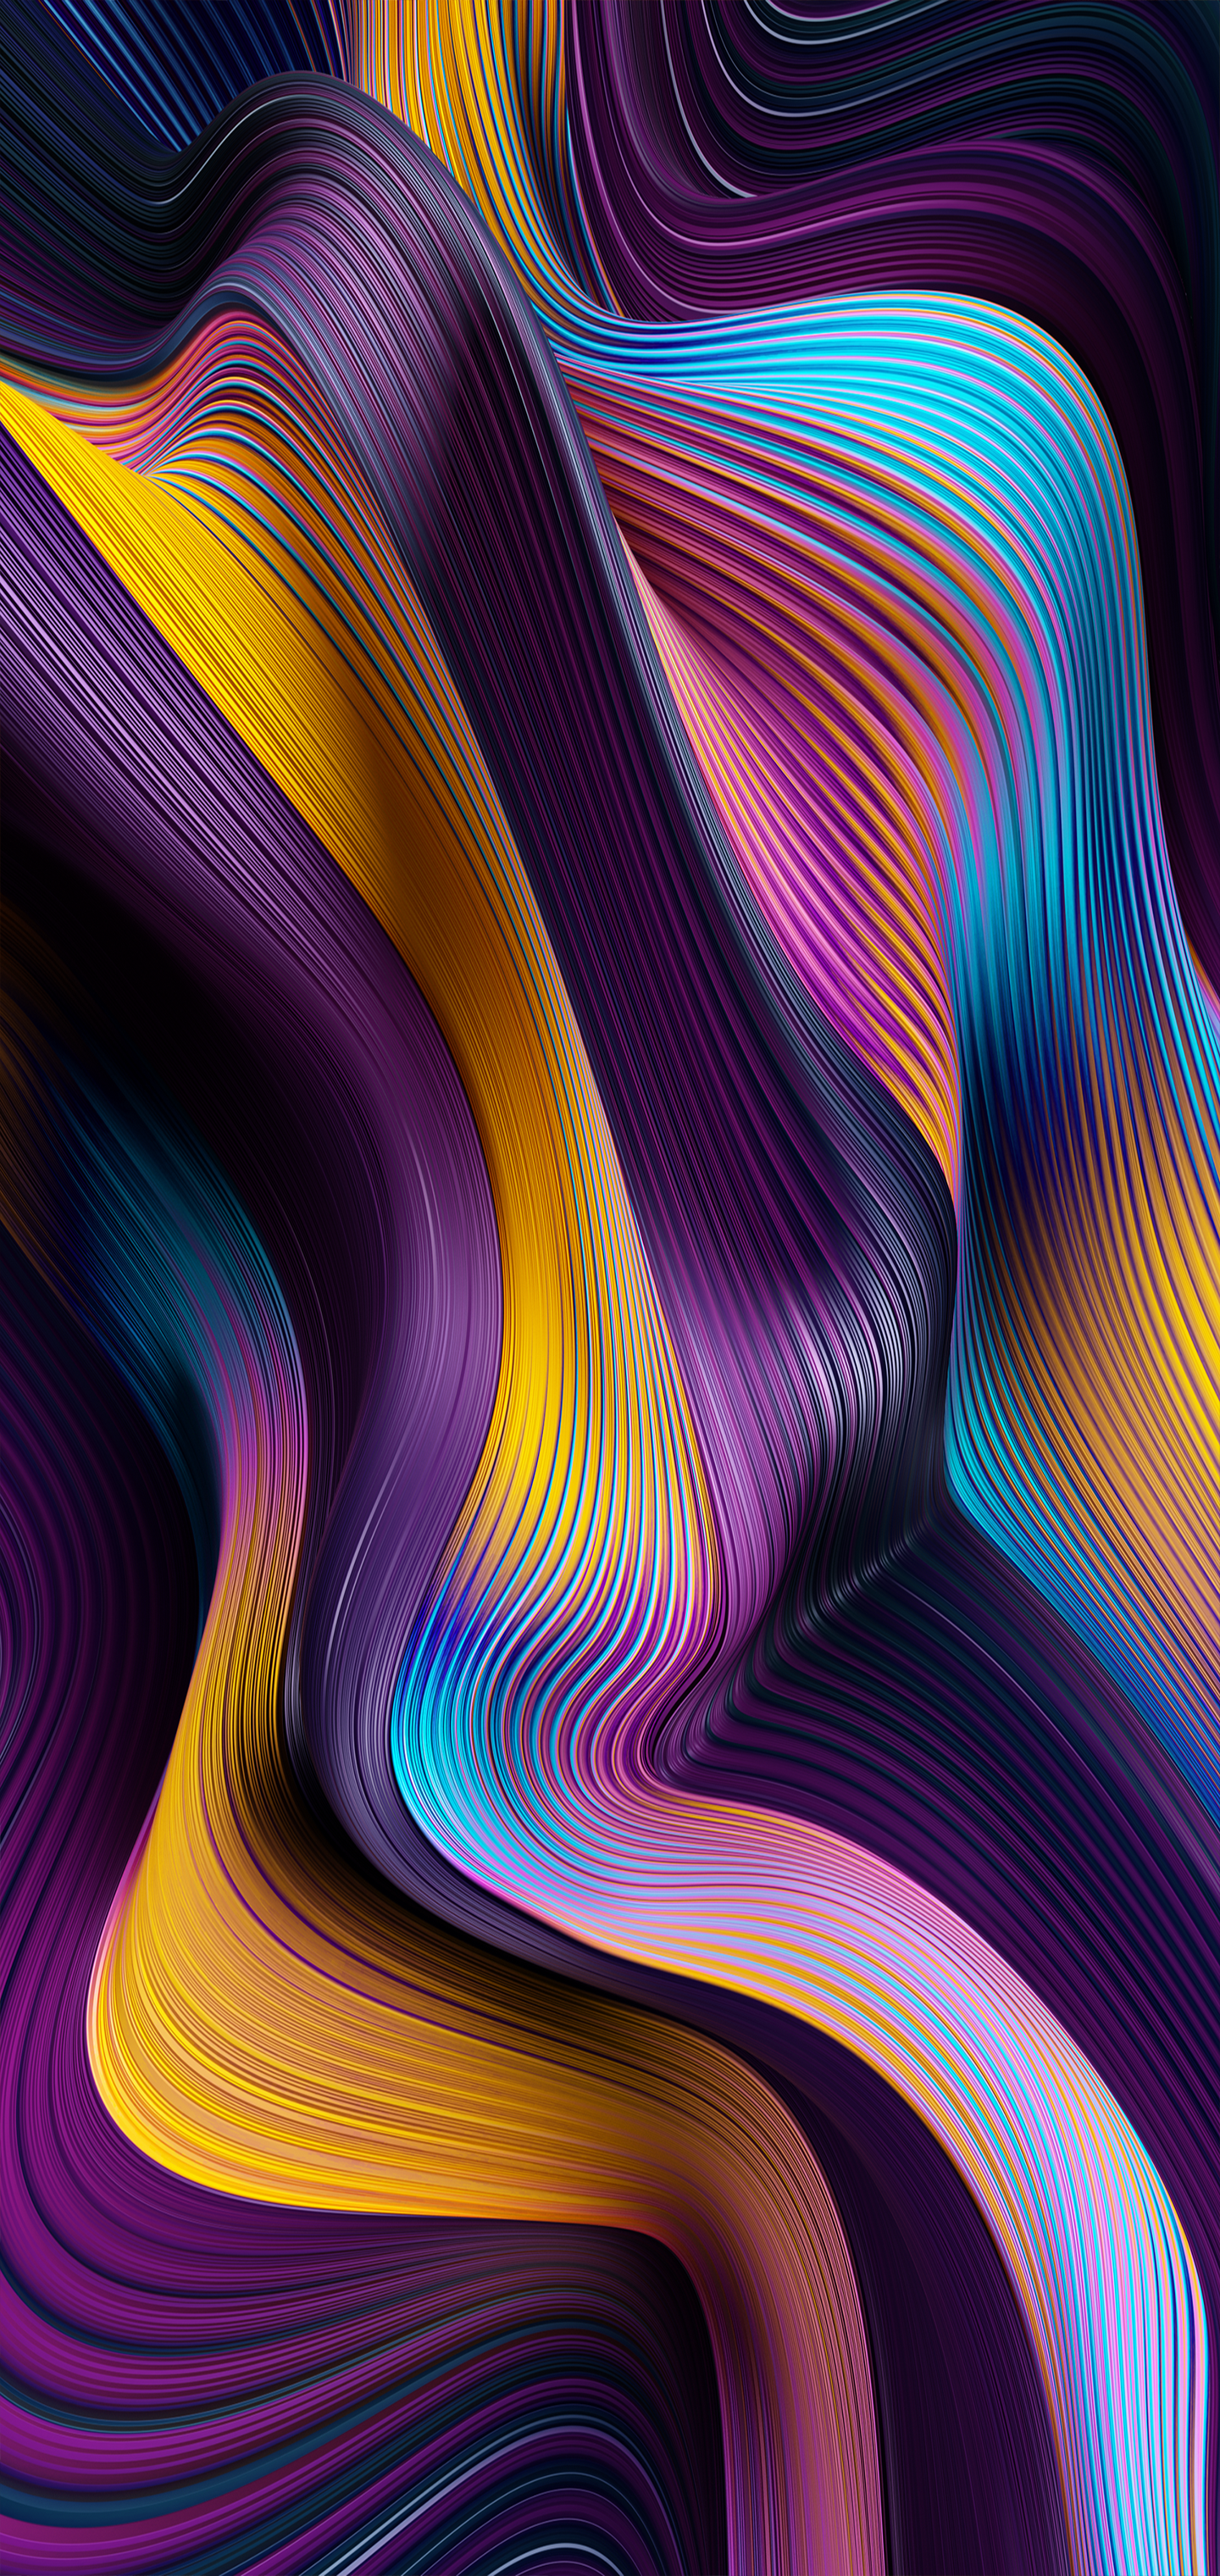 MIUI 12 Wallpaper (YTECHB Exclusive) in 2020 | Abstract ...